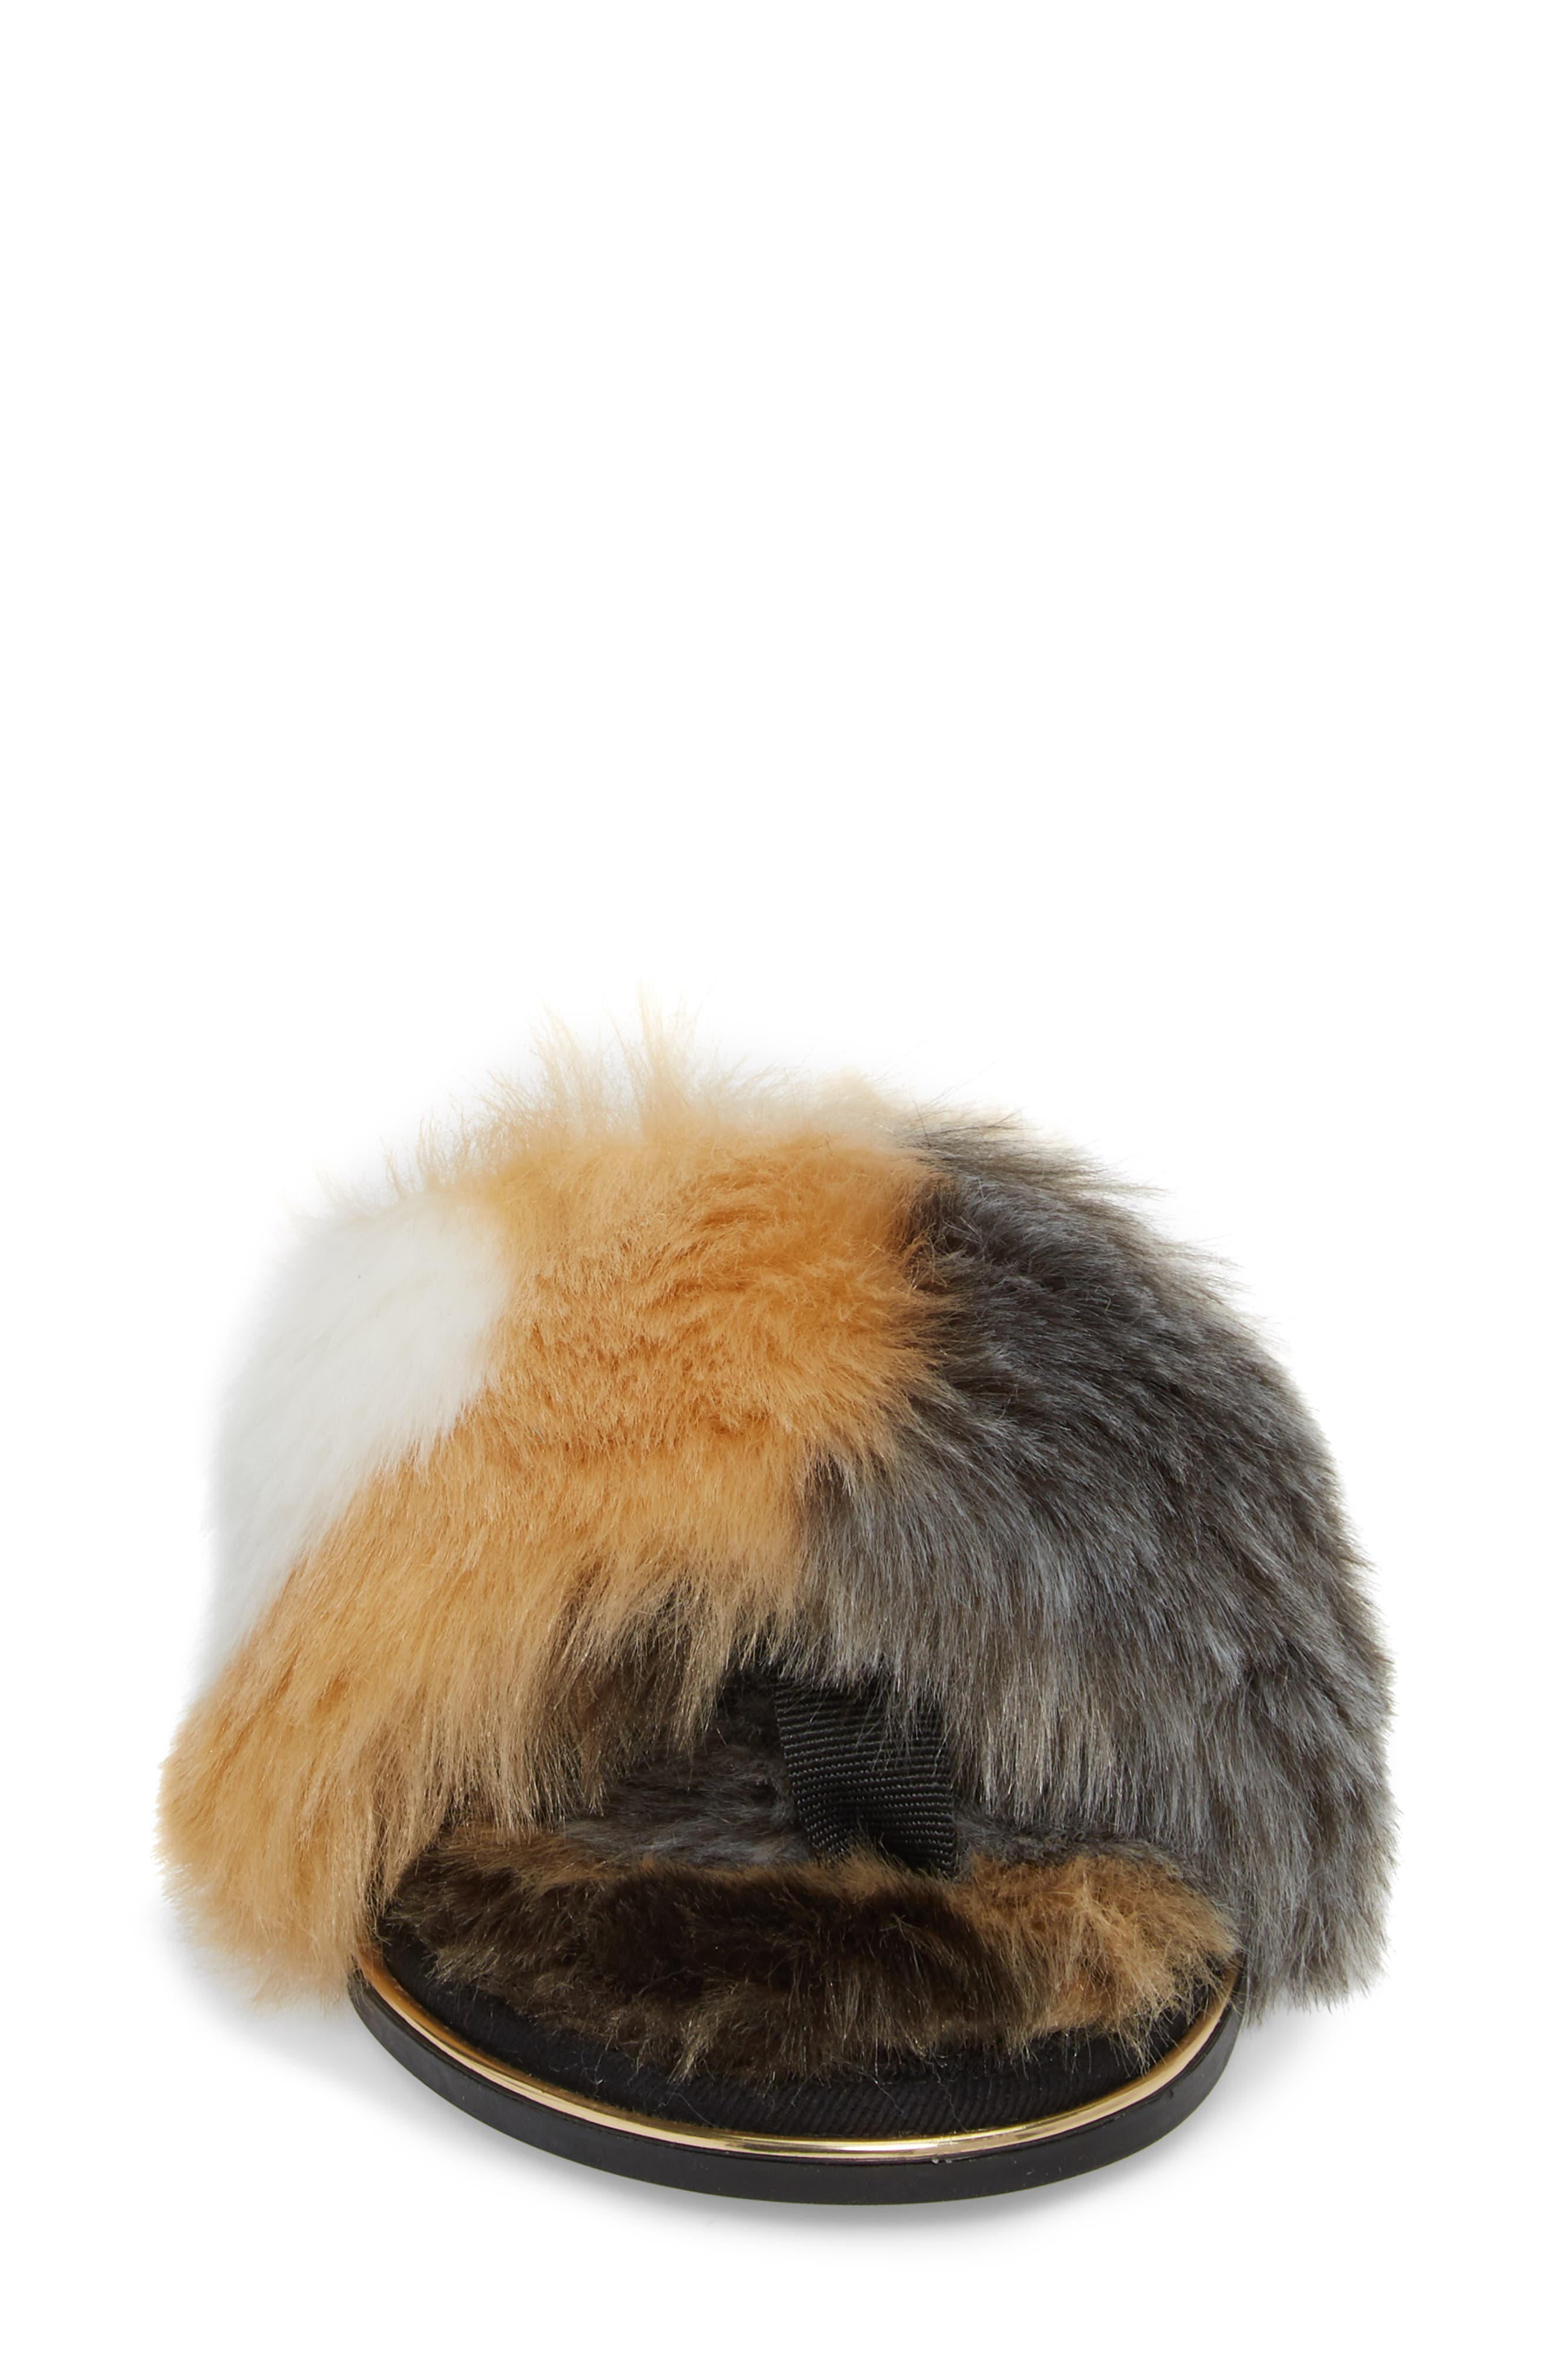 Rose Faux Fur Slide Sandal,                             Alternate thumbnail 4, color,                             Natural/ Black Faux Fur